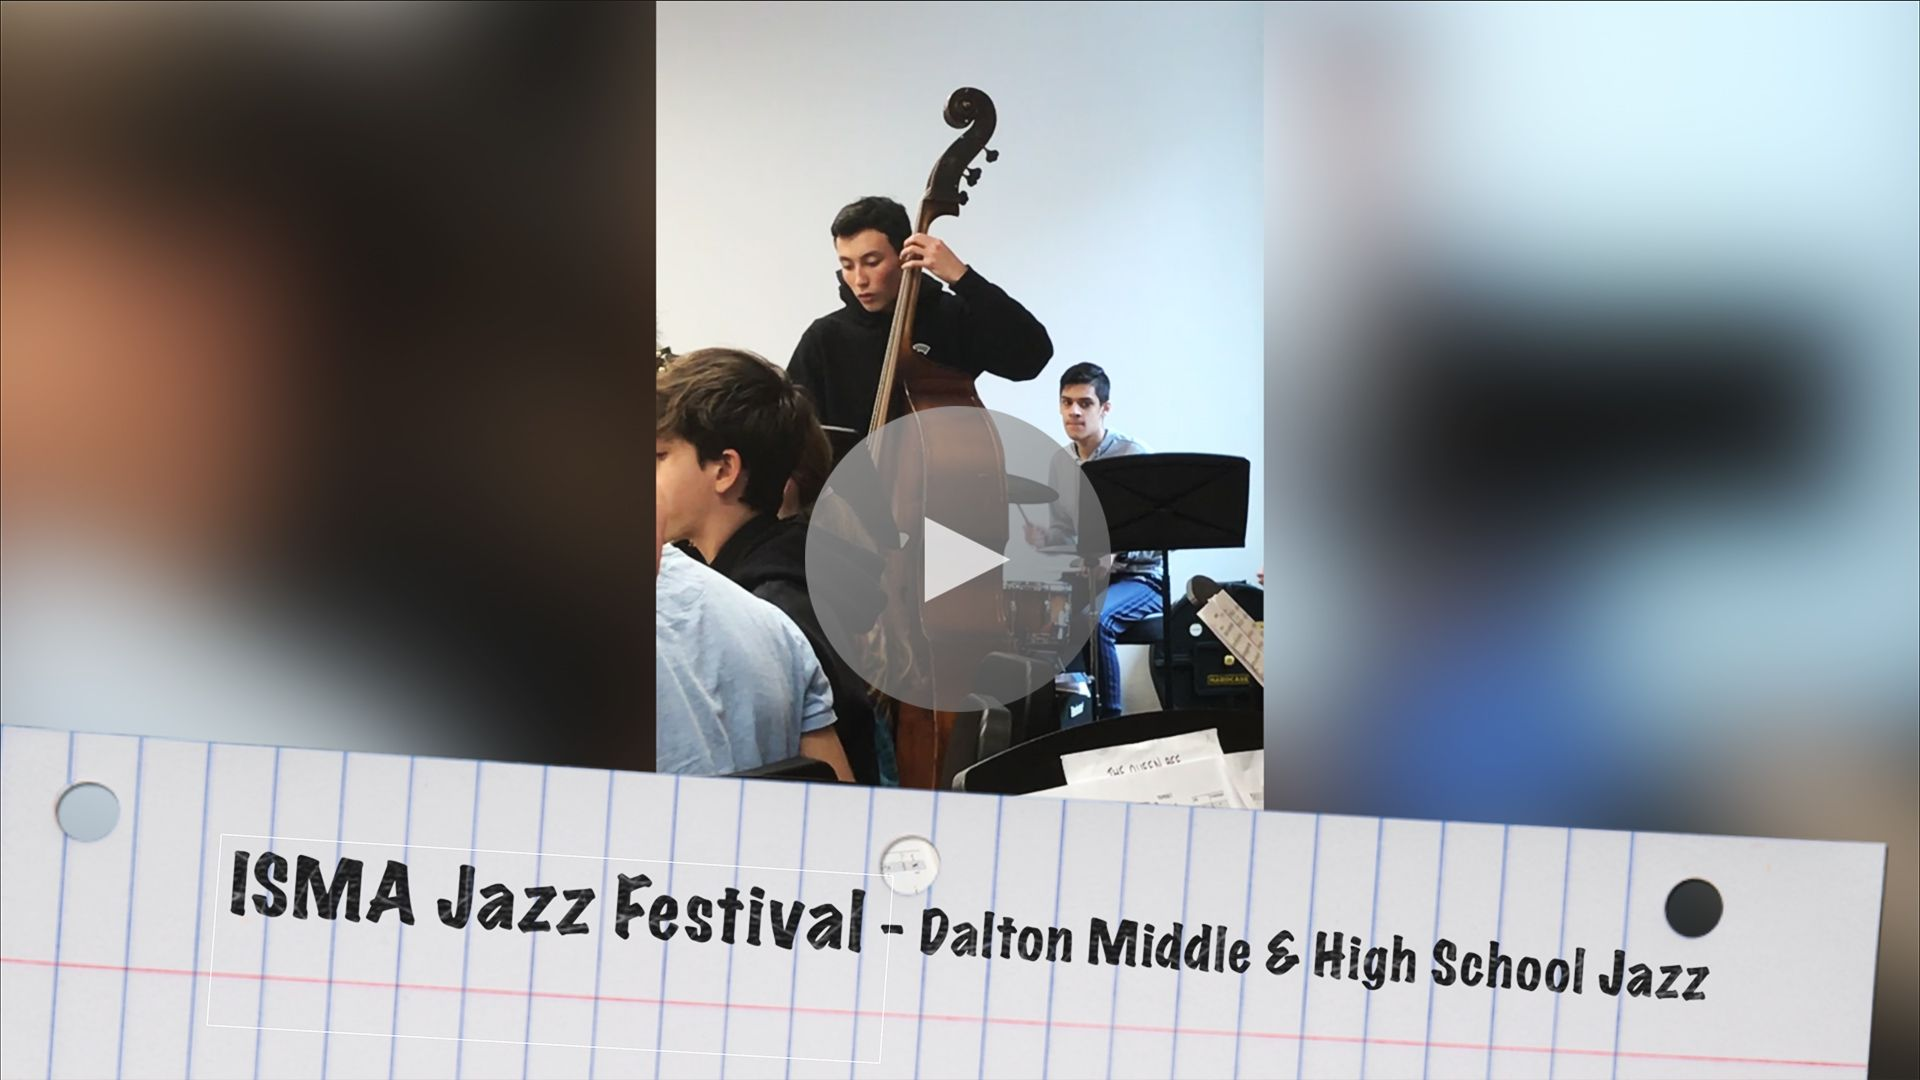 Clips provided by Dalton Music teacher David Morgan and parent Ruchi Mehta